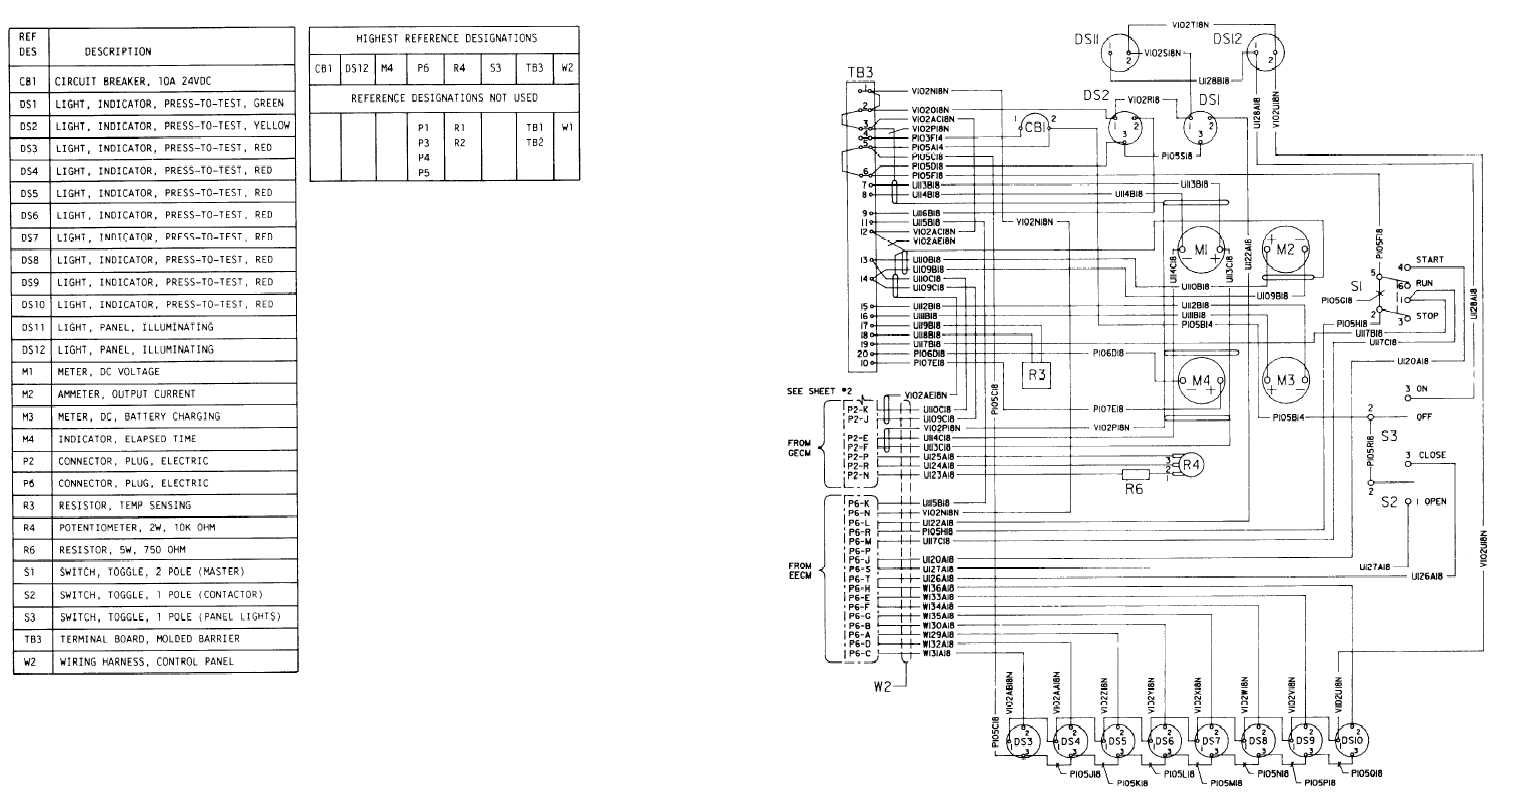 transformer rtcc panel wiring diagram